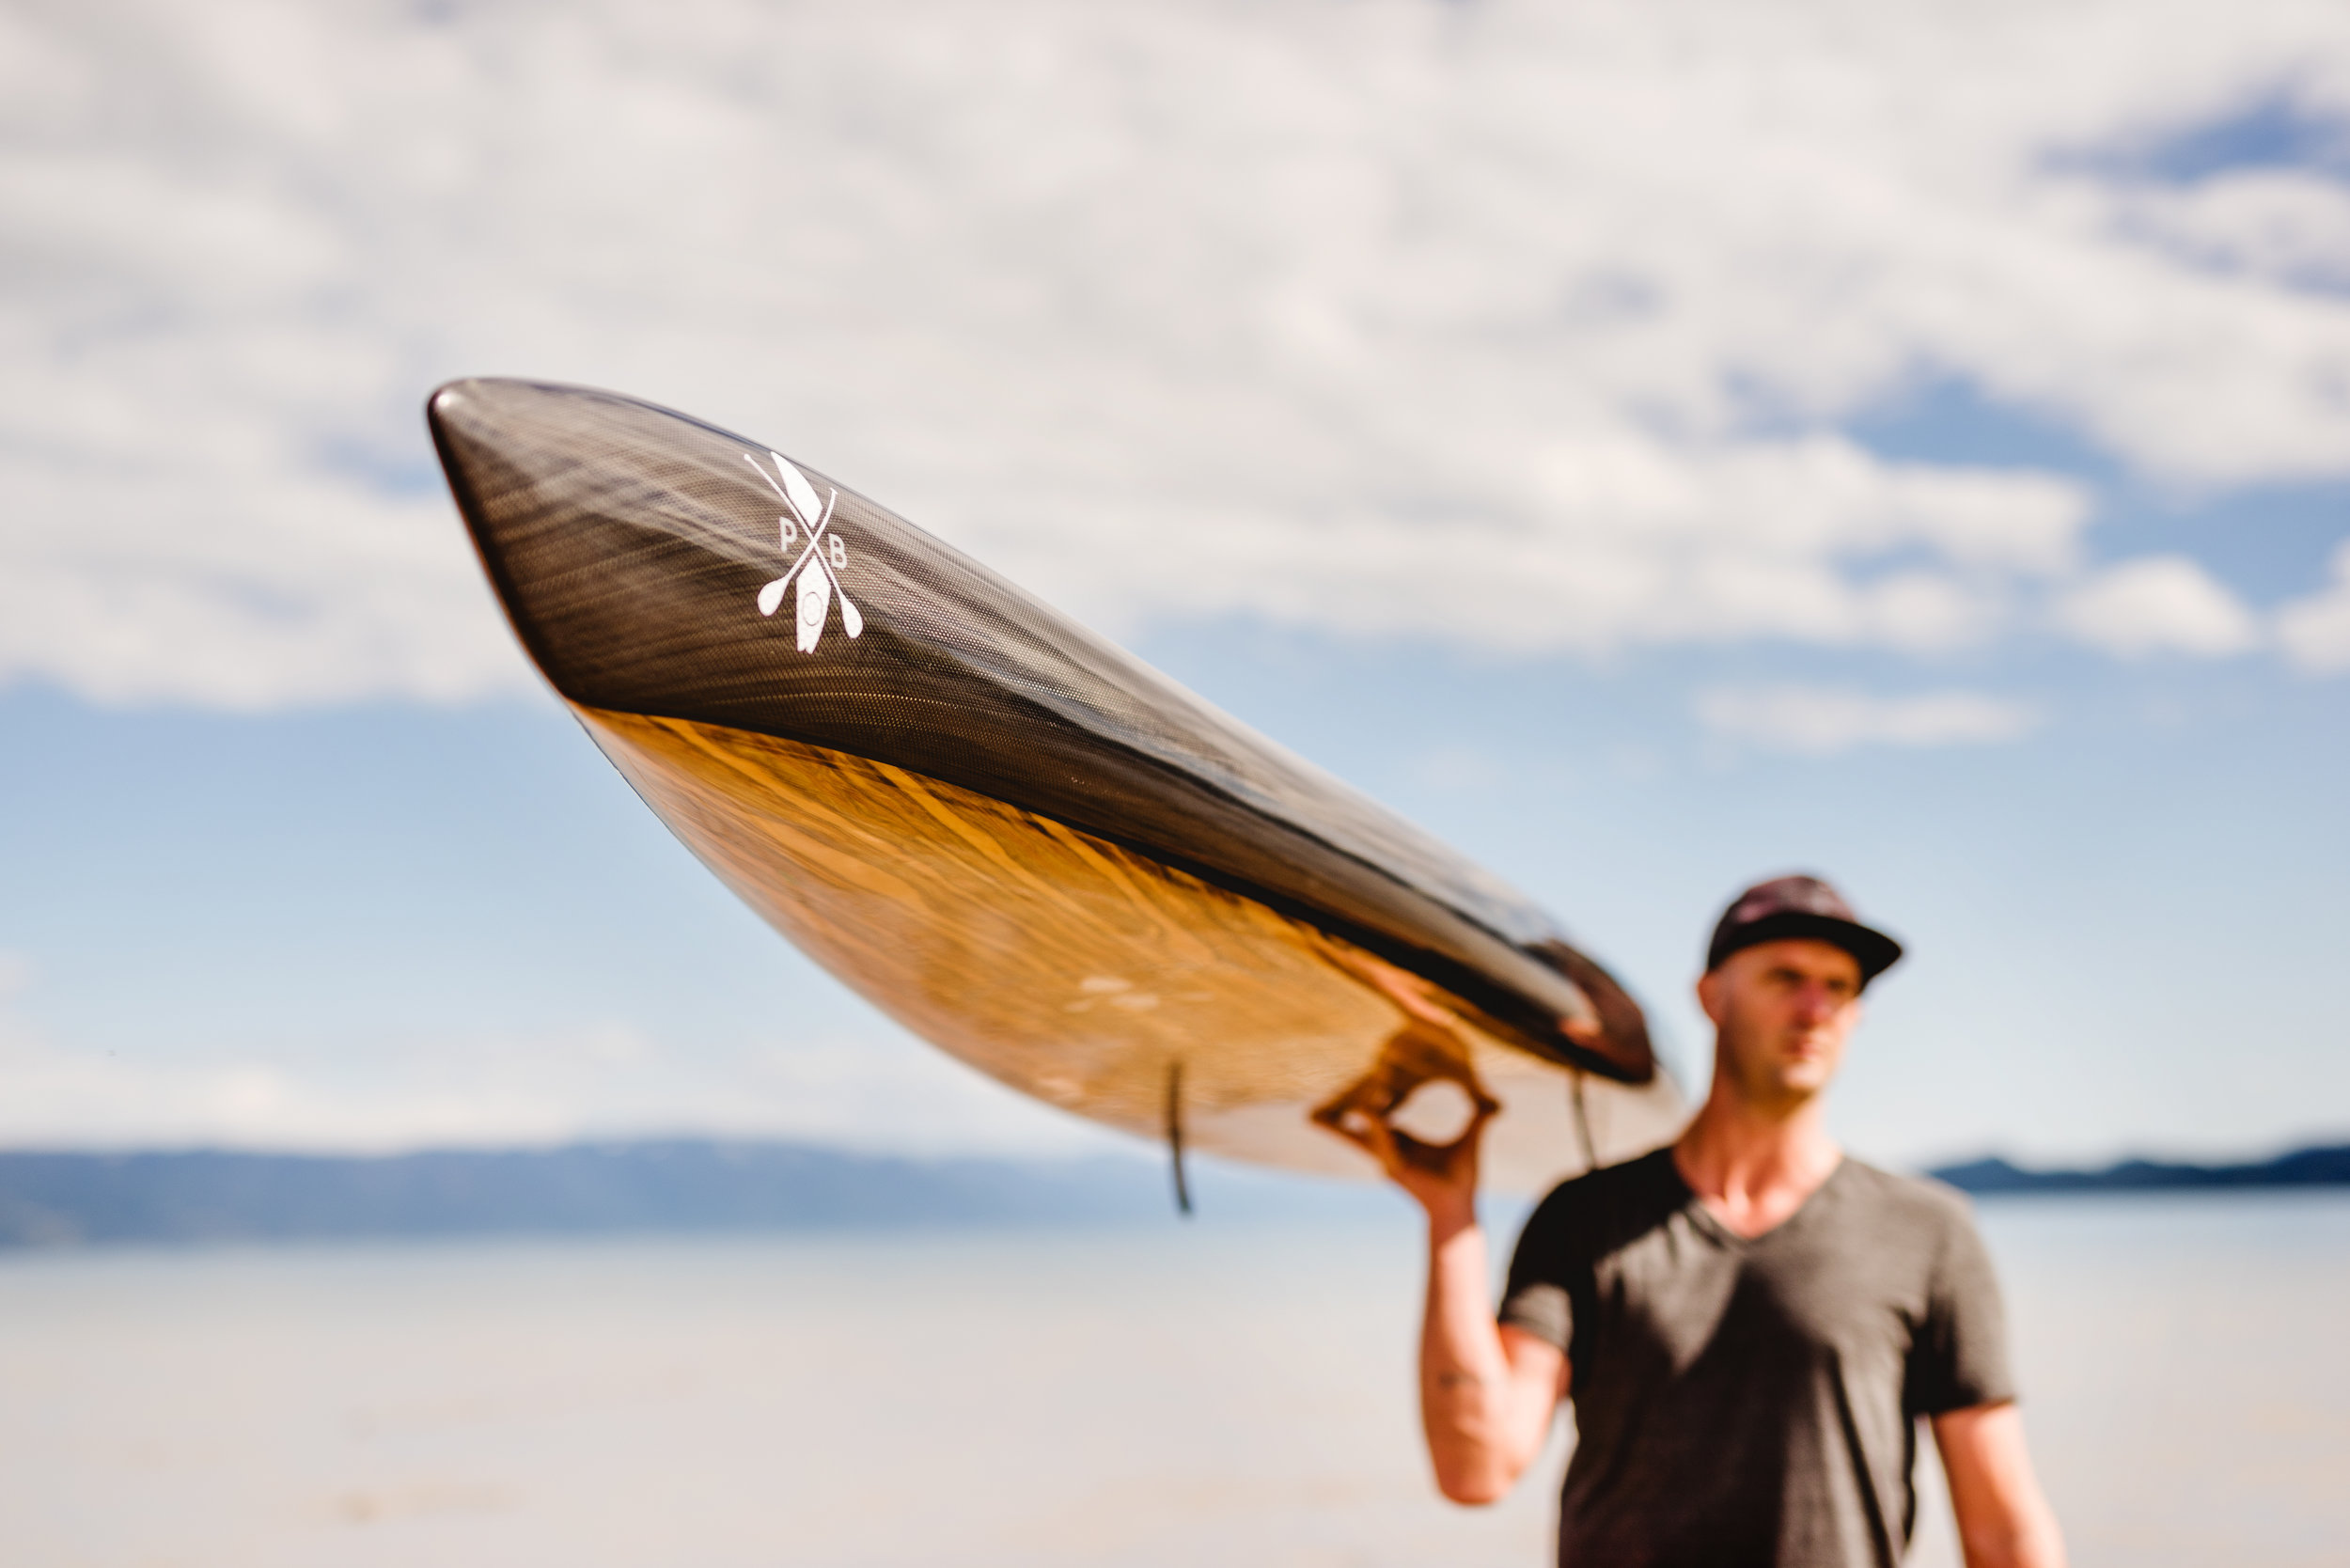 1 hr - 24 hr Rental |  The 2 hr & 4 hr rentals include a free lesson. The 24 hr rentals allow you to take our boards to any lake you would like as long as they are returned the following day with in the 24 hour period.